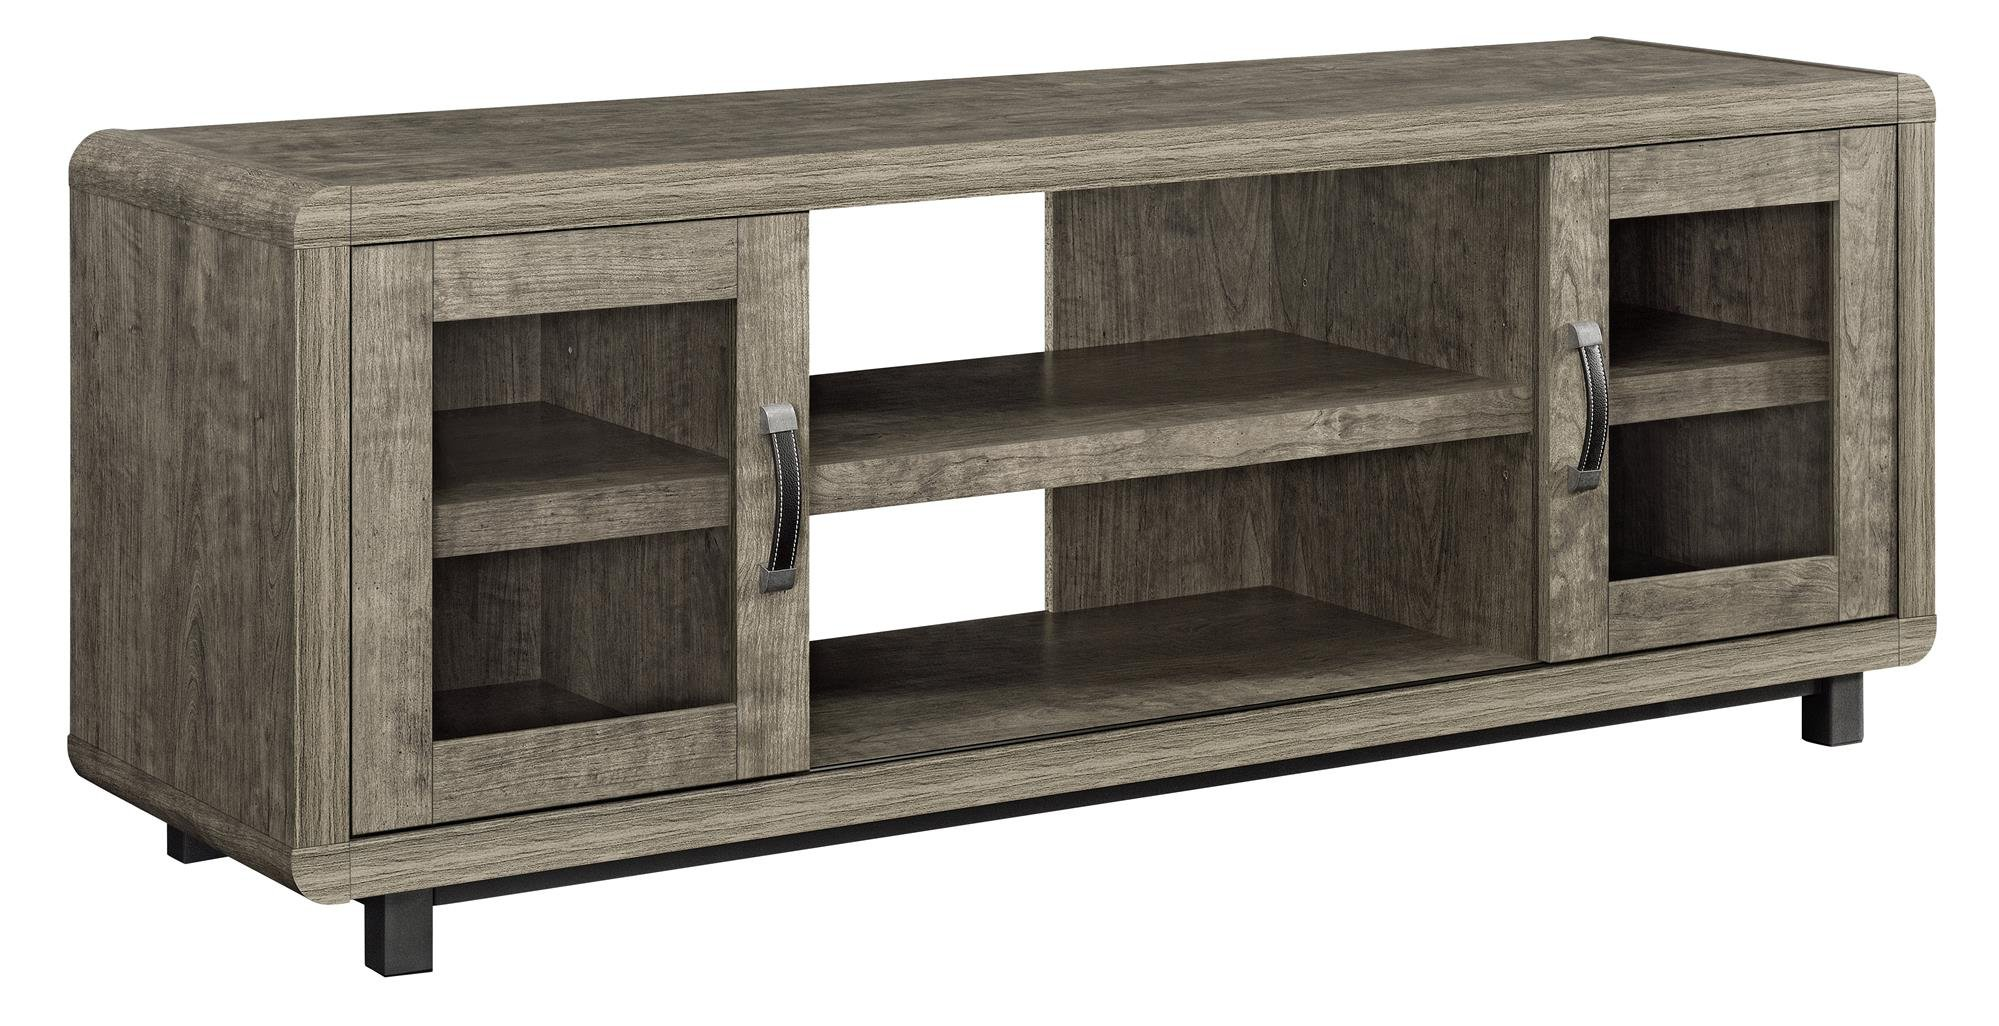 Ameriwood Home Eastlin TV Console for TVs up to 55'', Brown by Ameriwood Home